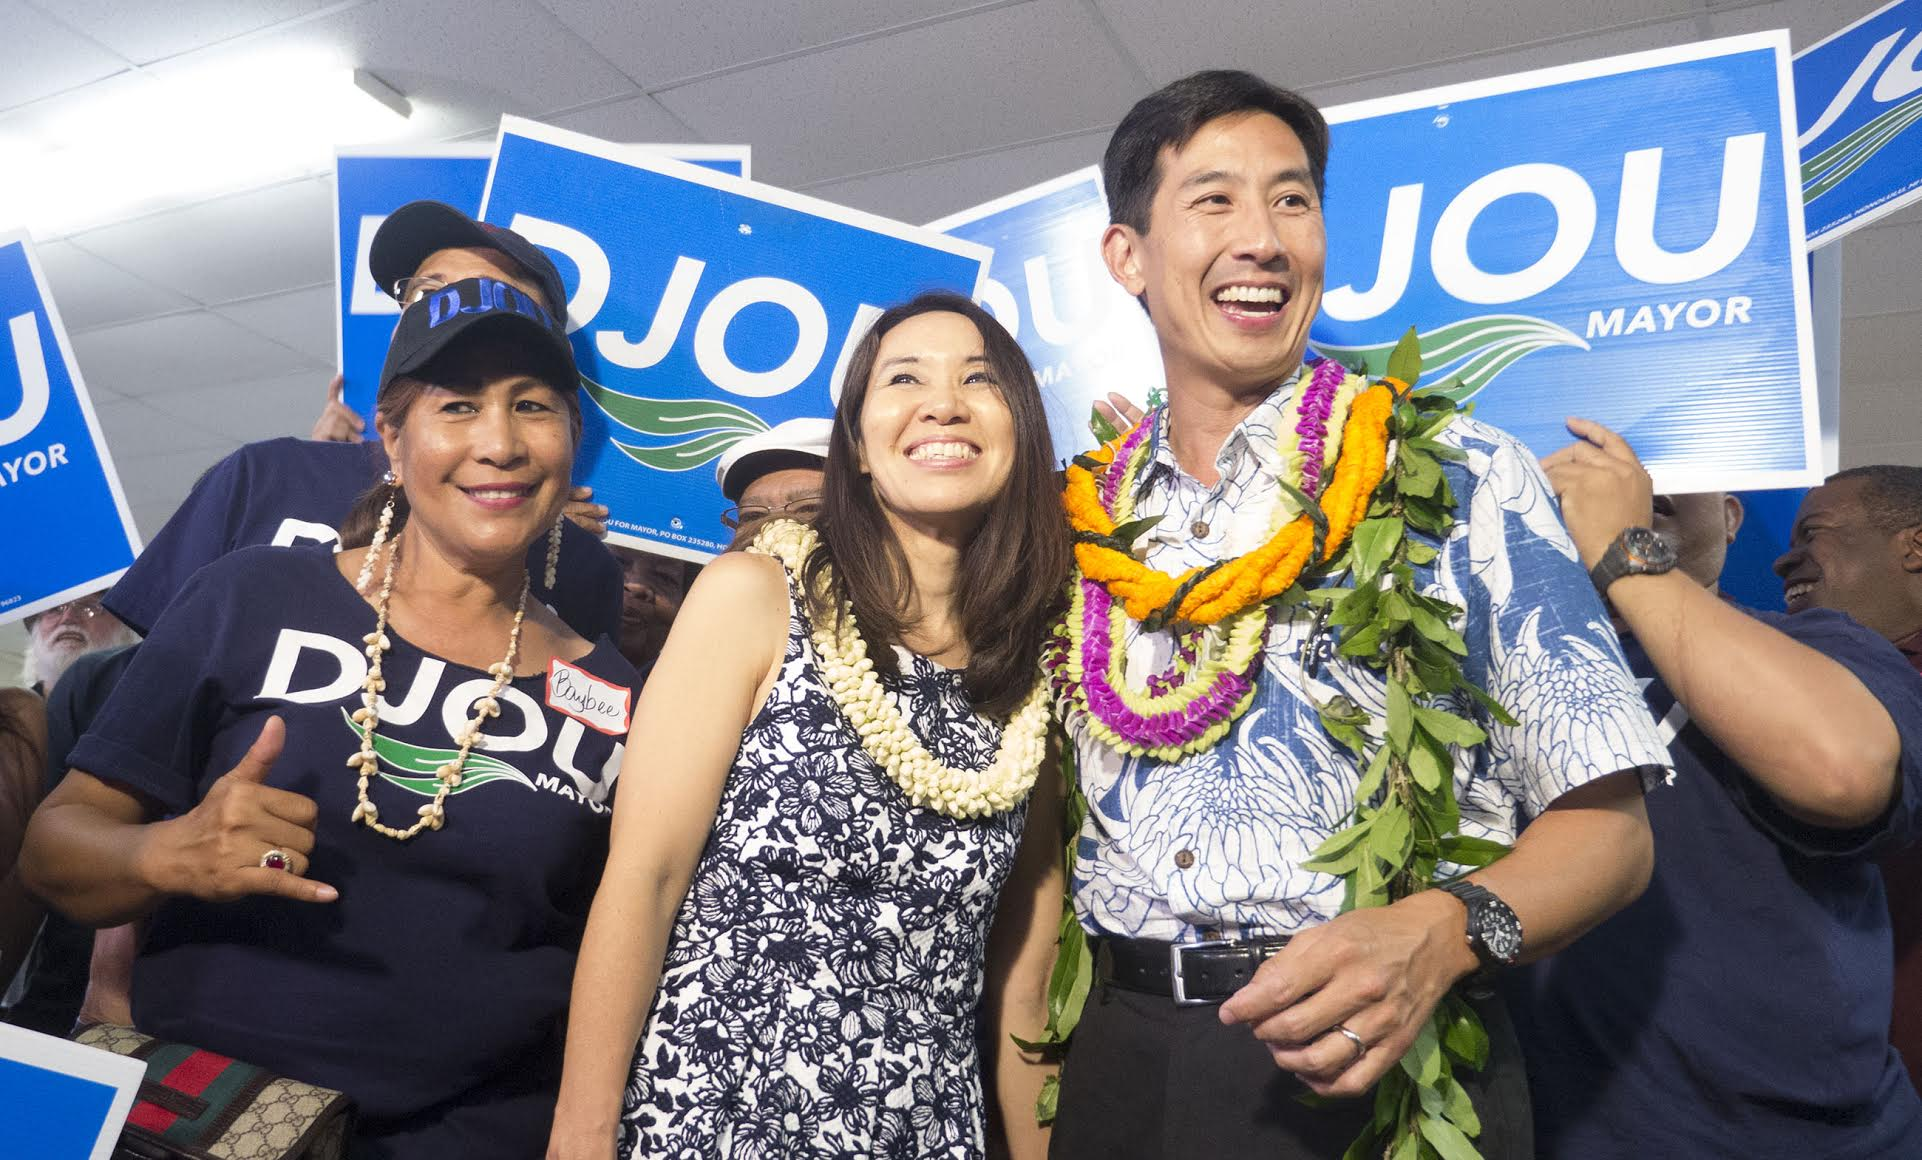 <p>Charles Djou was joined by his wife, Stacey, for the evening's festivities. (Ronen Zilberman/Civil Beat)</p>